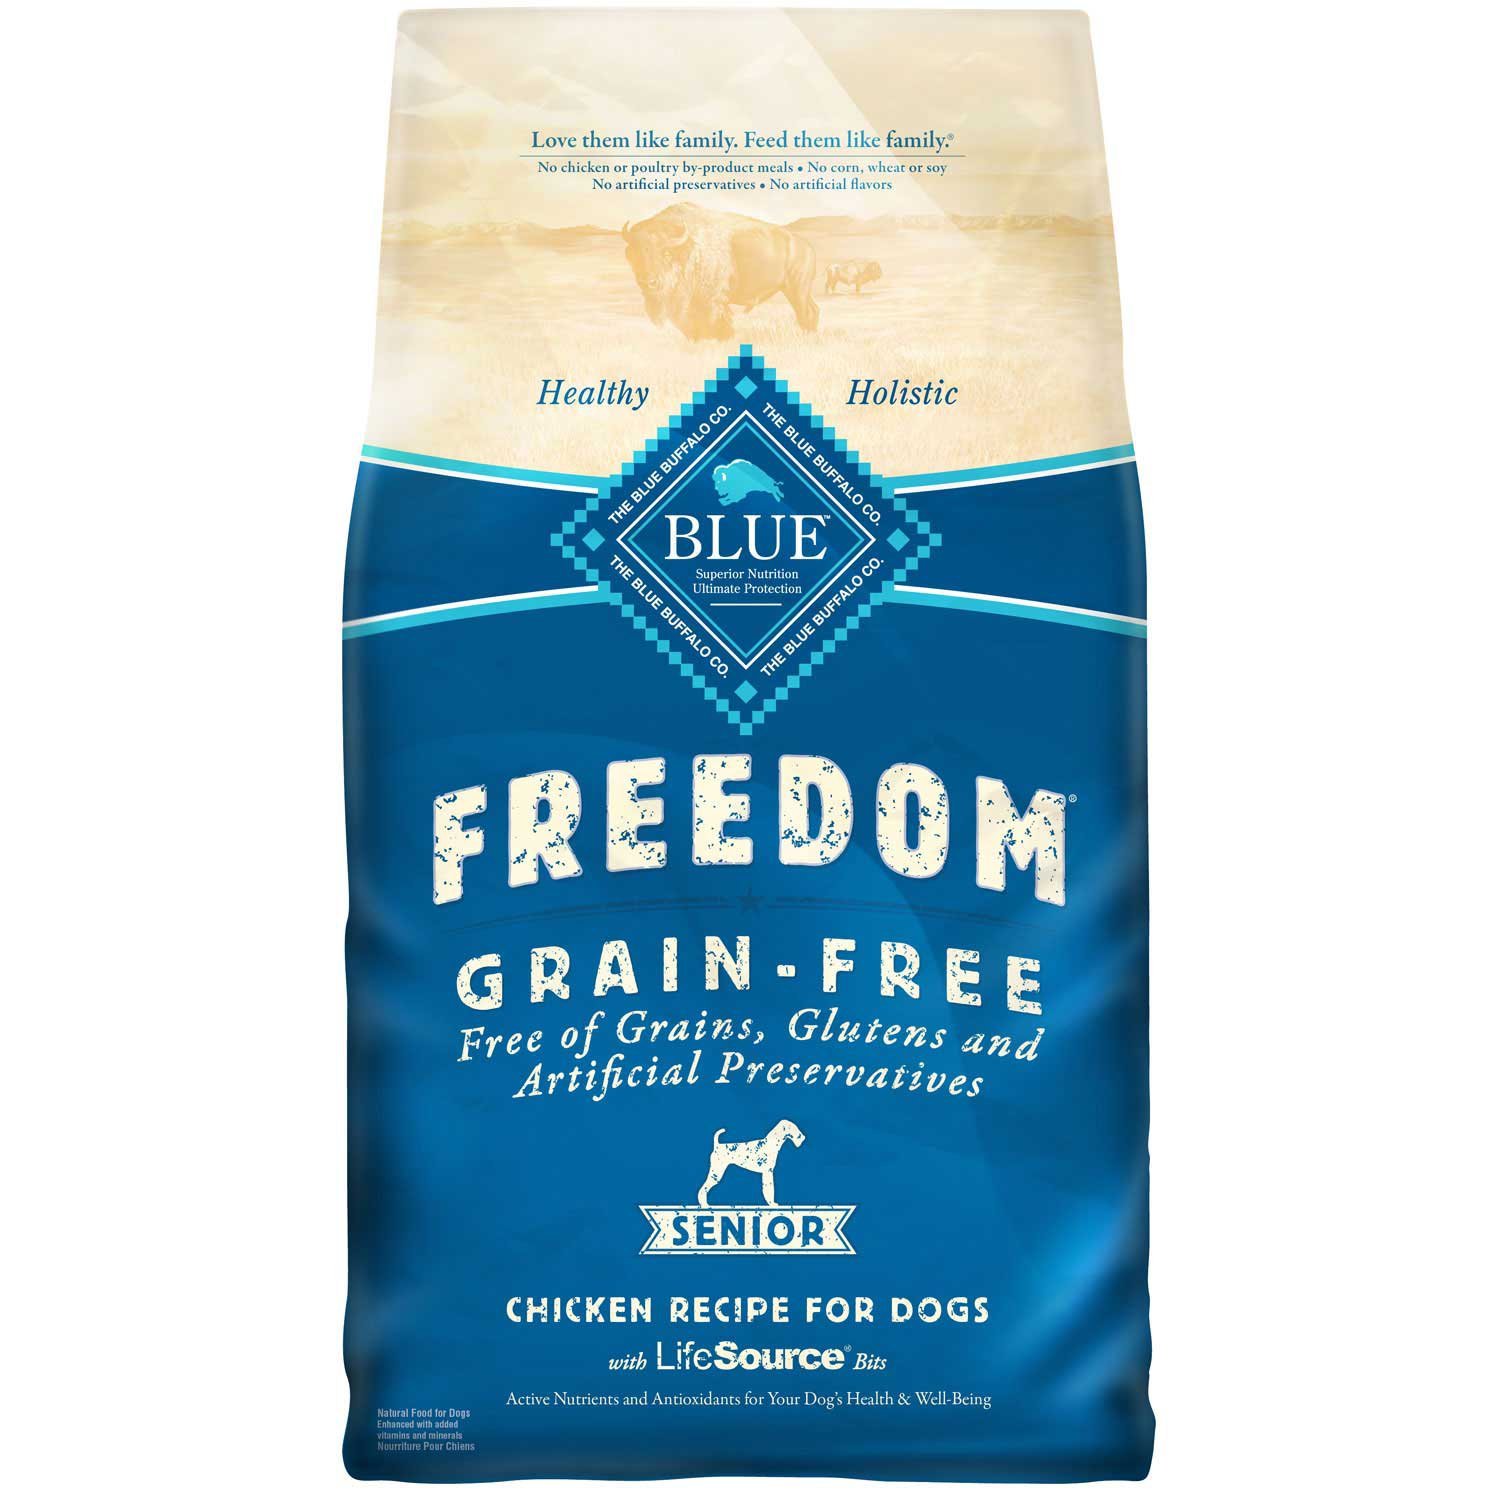 Blue Buffalo Dry Dog Food Rating